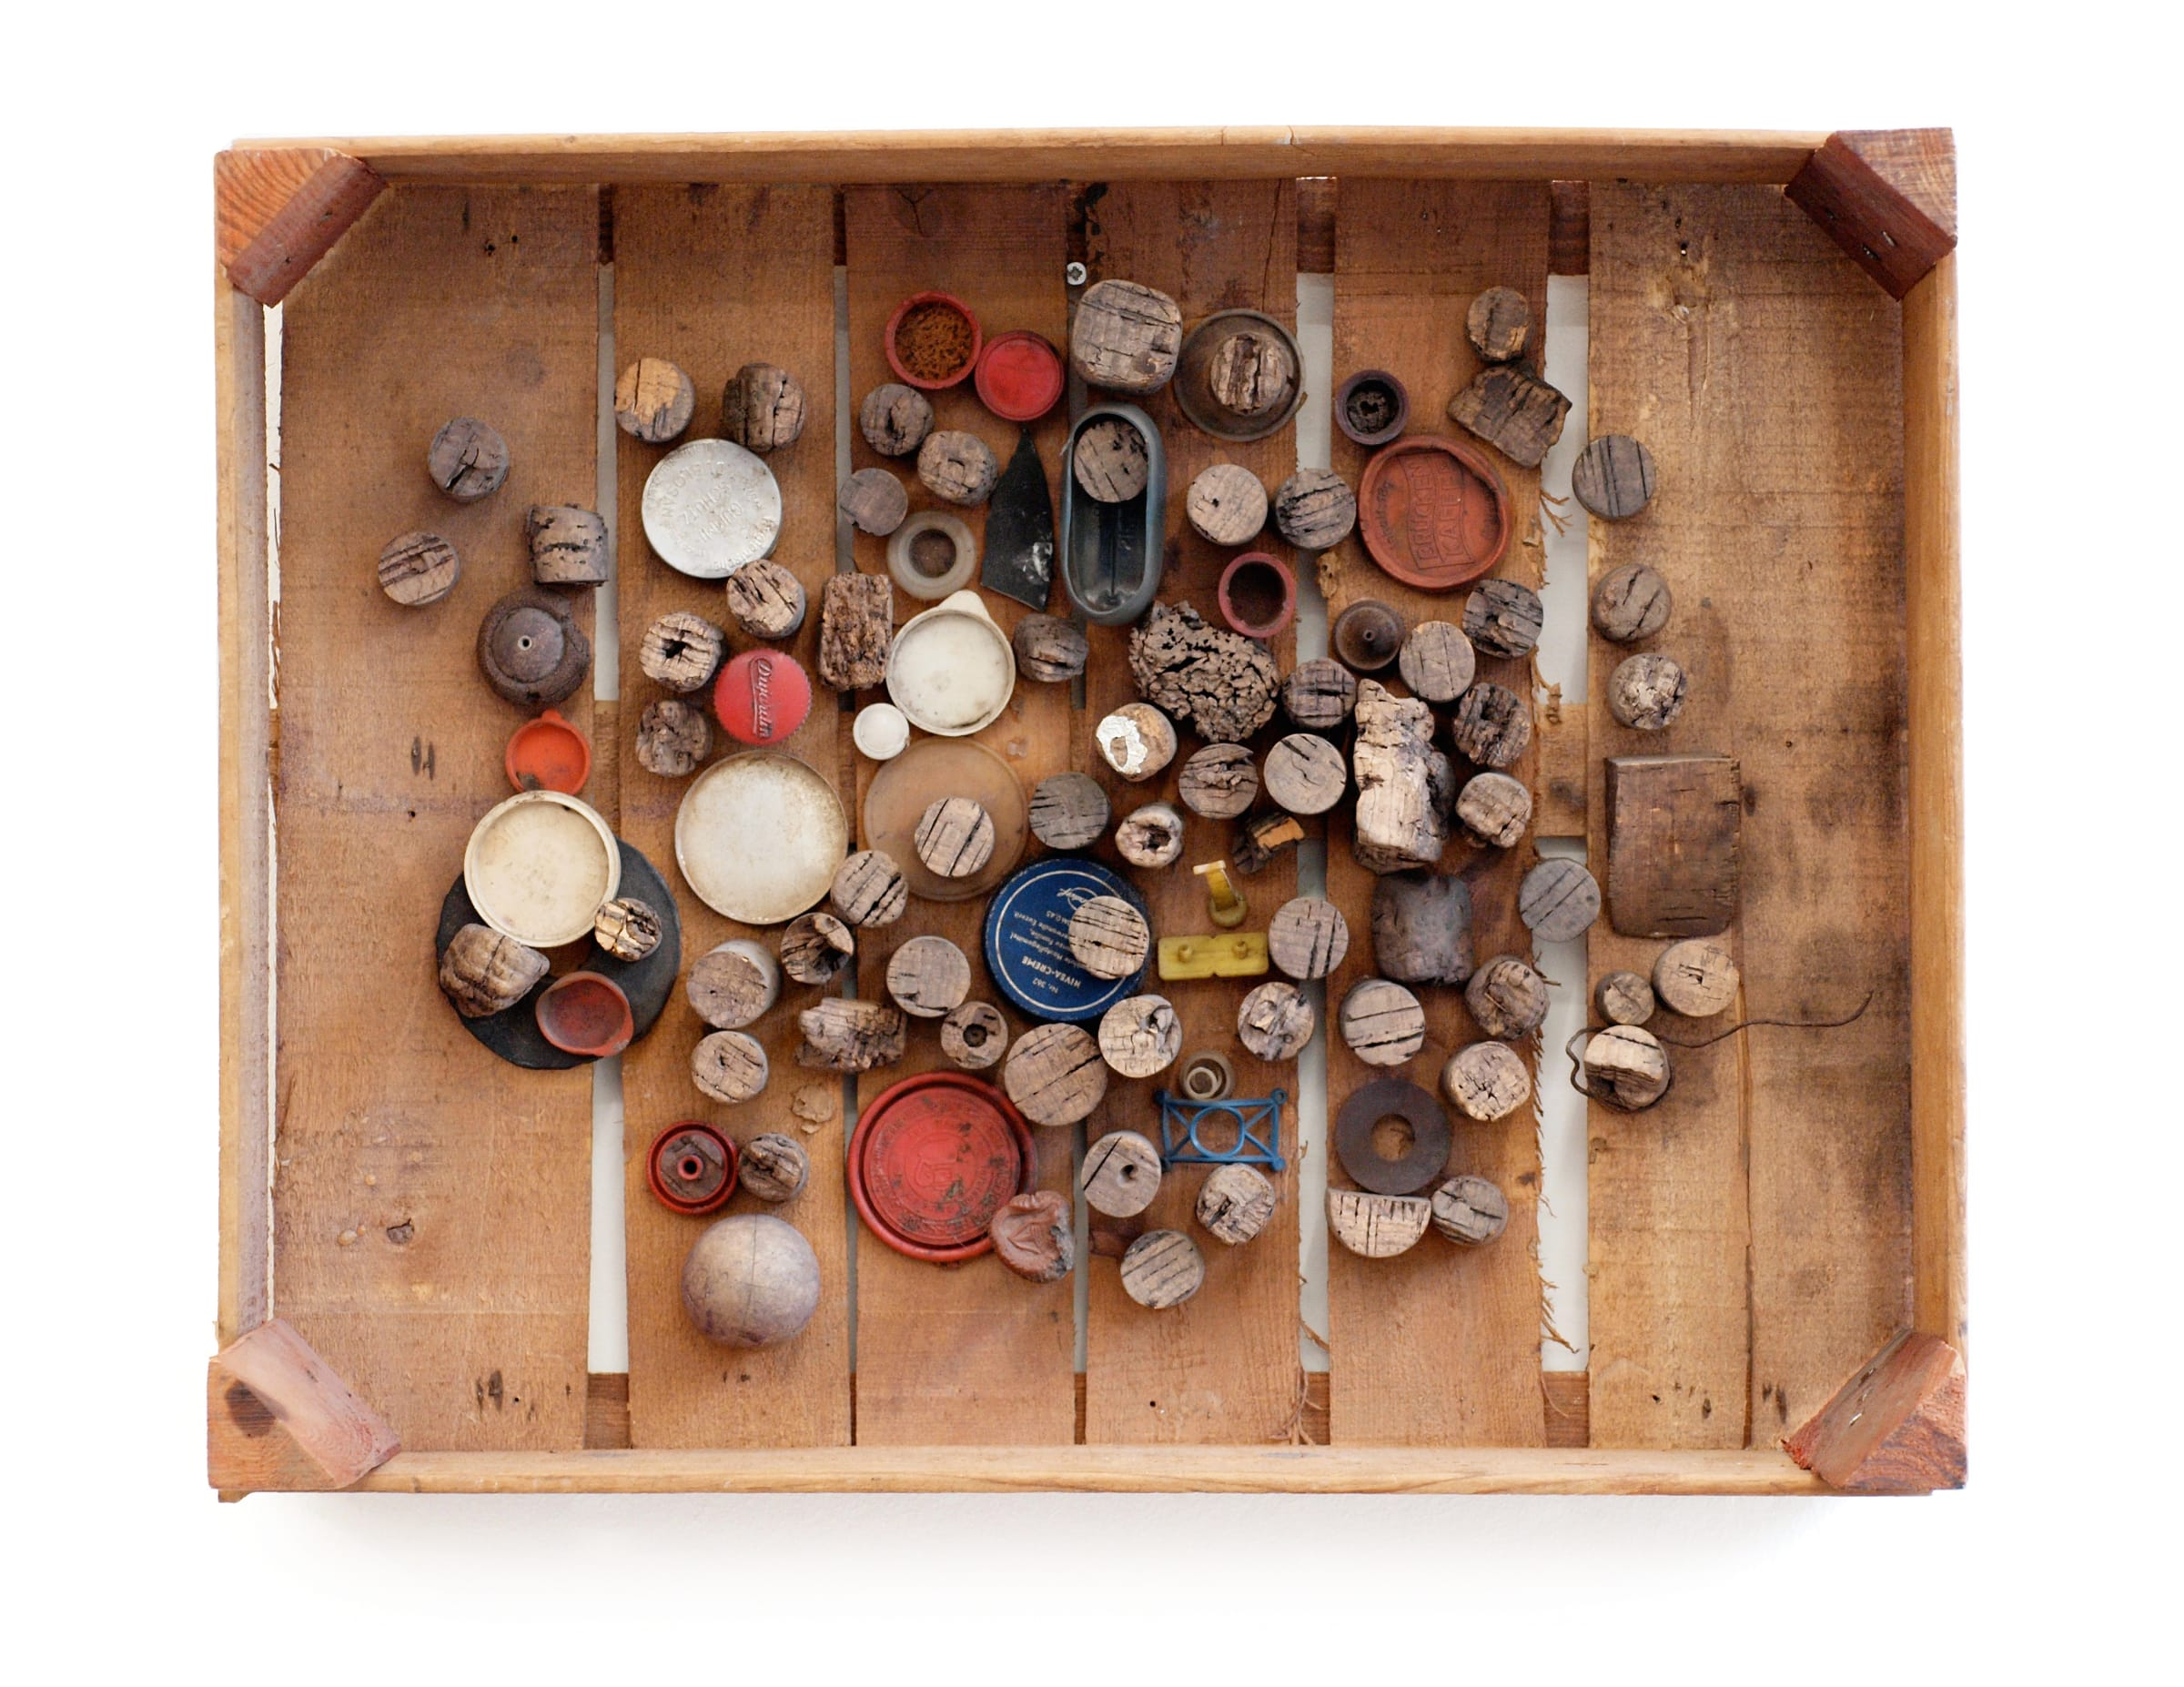 """<span class=""""link fancybox-details-link""""><a href=""""/exhibitions/583/works/artworks_standalone9458/"""">View Detail Page</a></span><div class=""""medium"""">Assemblage of corks and plastic caps in wooden crate</div><div class=""""dimensions"""">39 x 50 x 16 cm<br /> 15 3/8 x 19 3/4 x 6 1/4 inches</div>"""